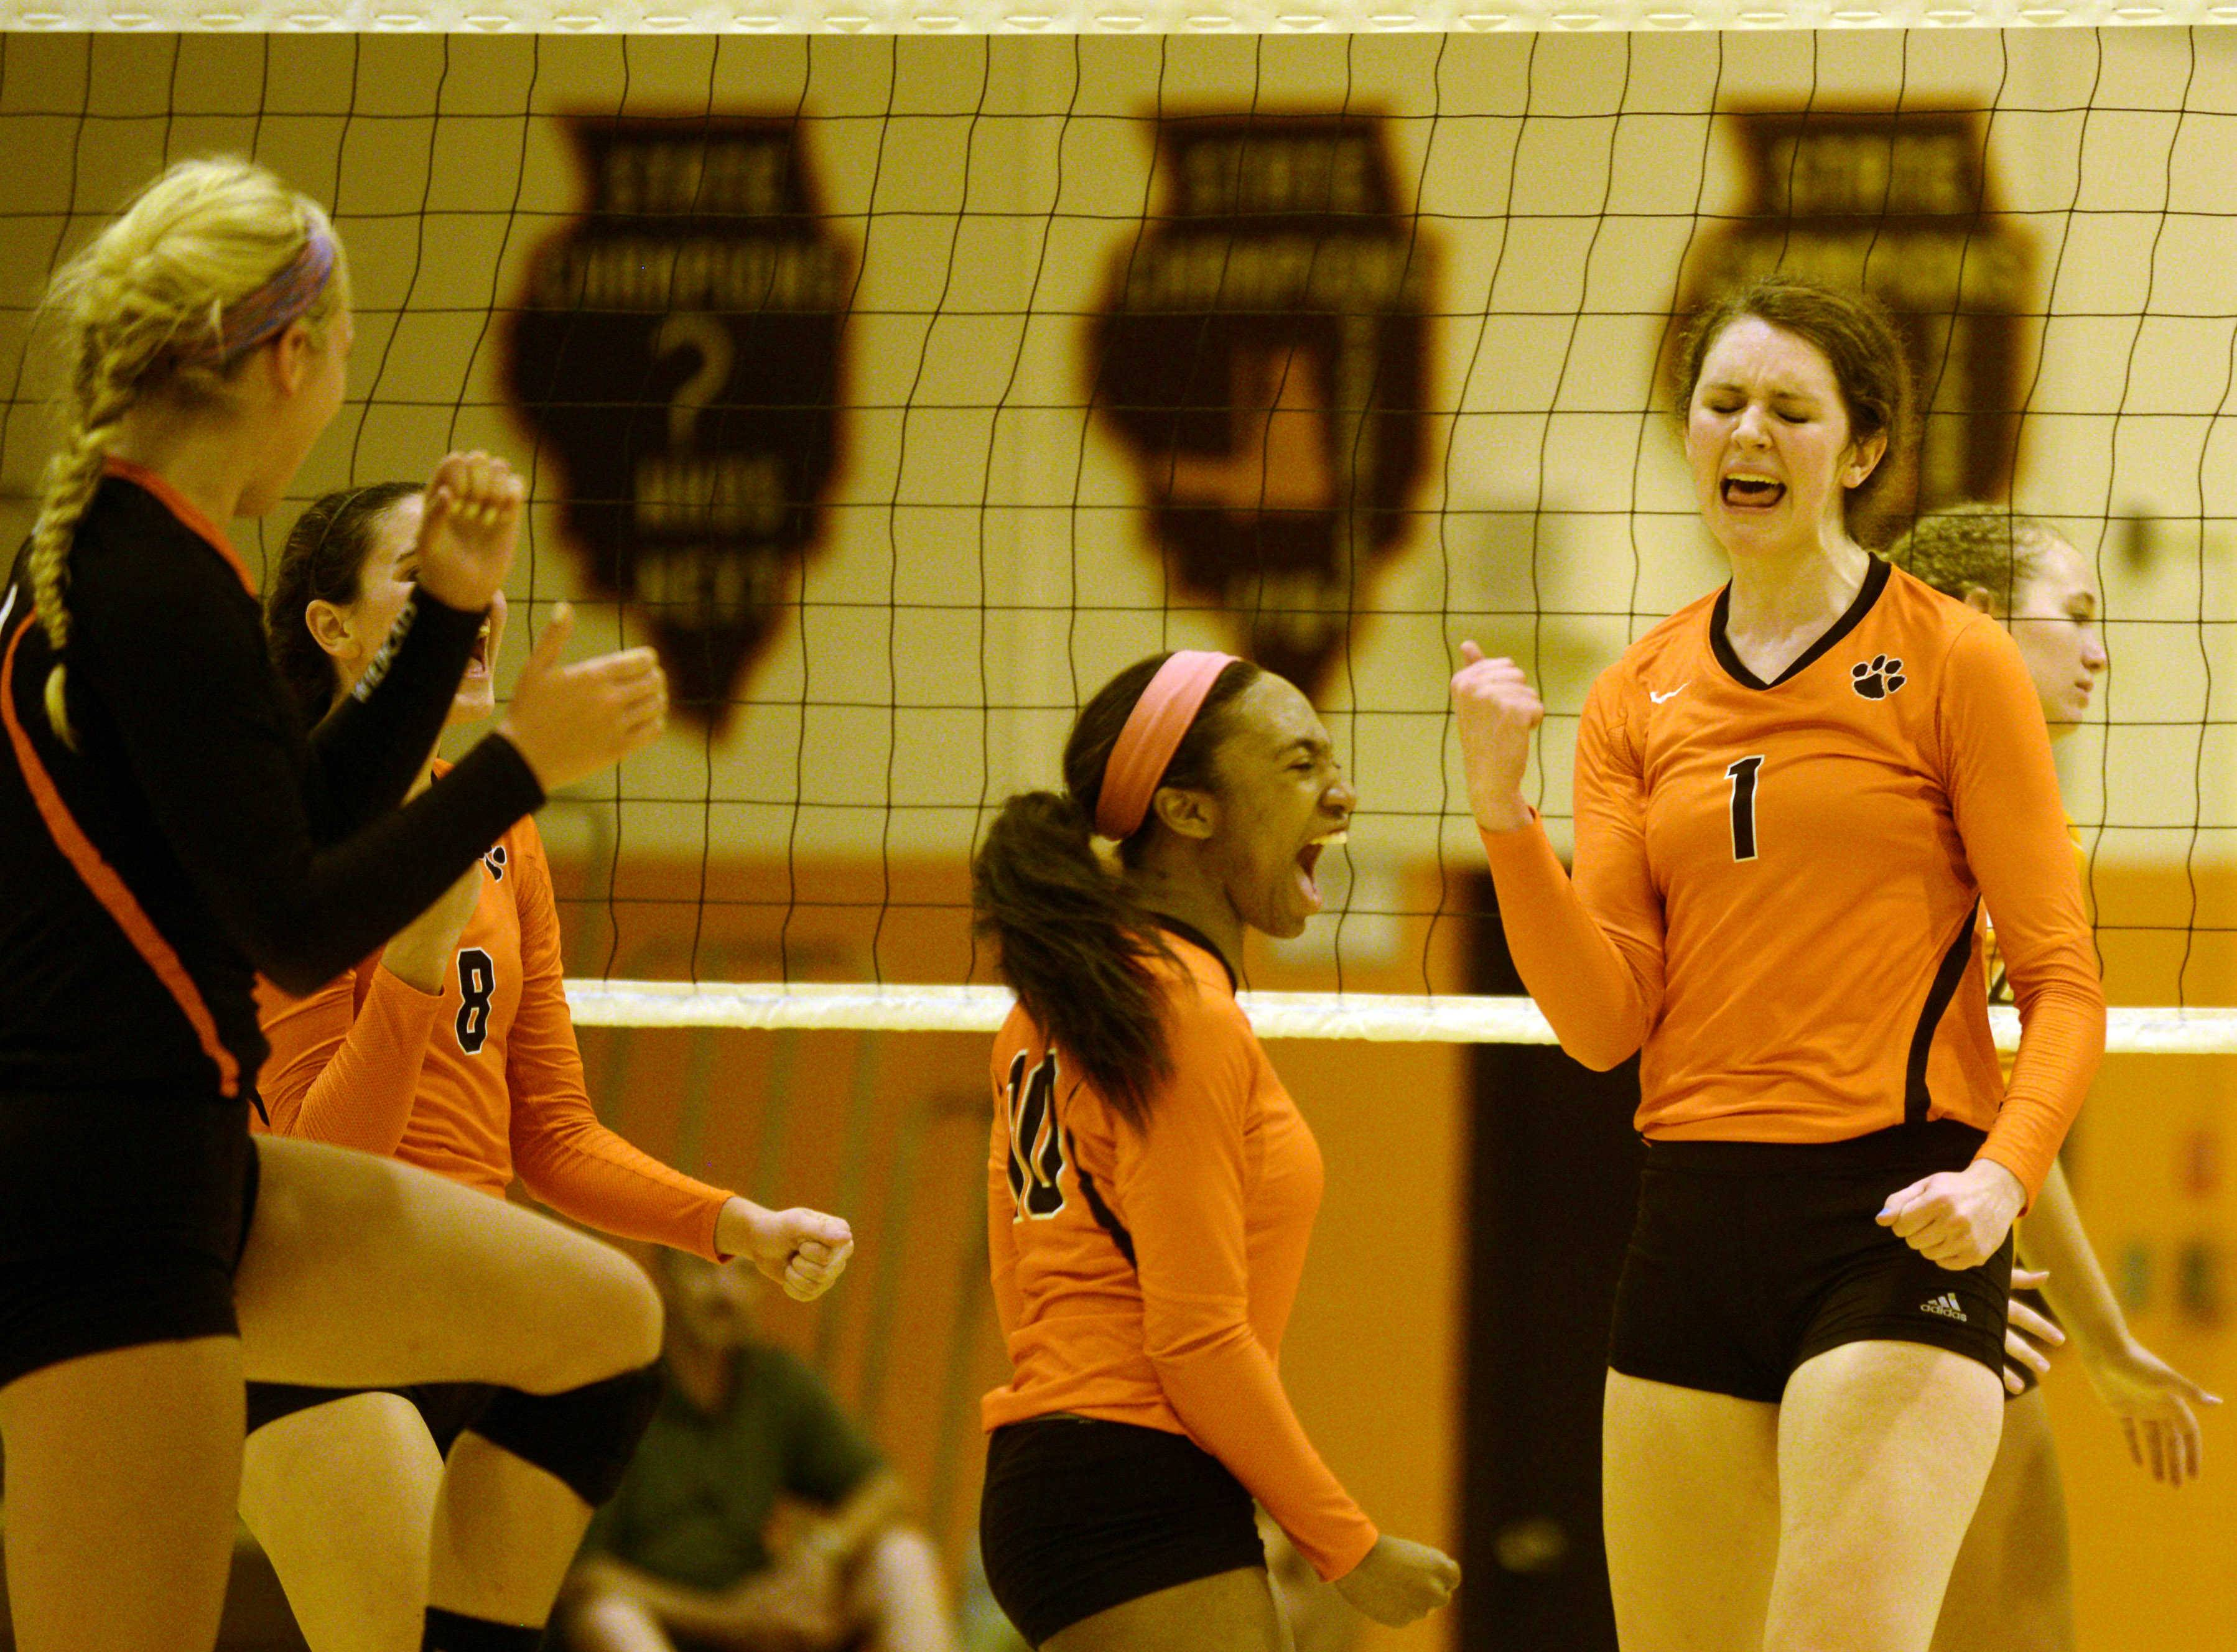 Libertyville's Eryka Jones, center, and Alex Basler, right, lead cheers during the Wildcats' victory Monday at Hersey.